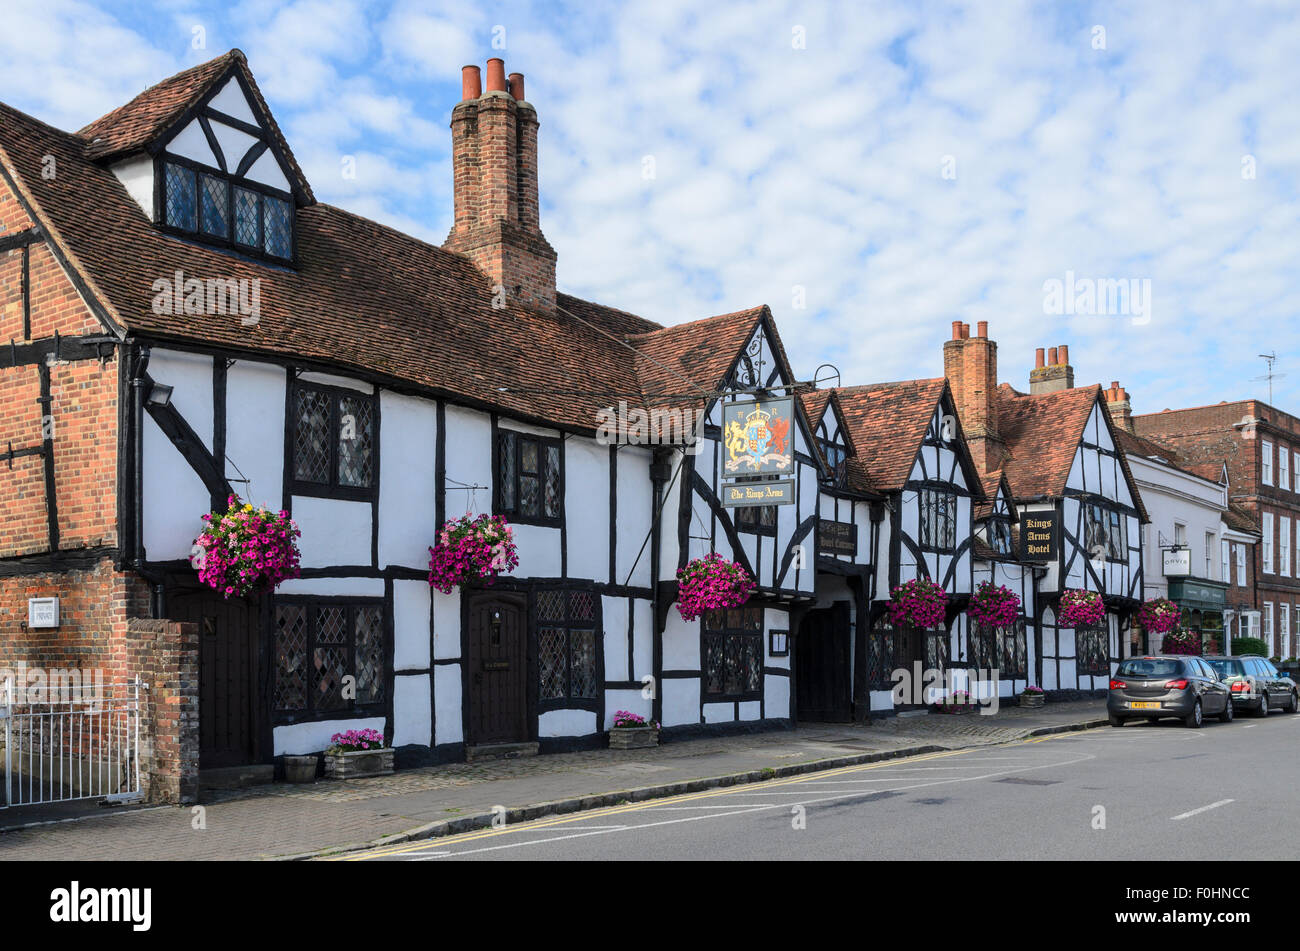 The Kings Arms Hotel in Old Amersham has featured in many TV programmes and Movies including Midsomer Murders and - Stock Image